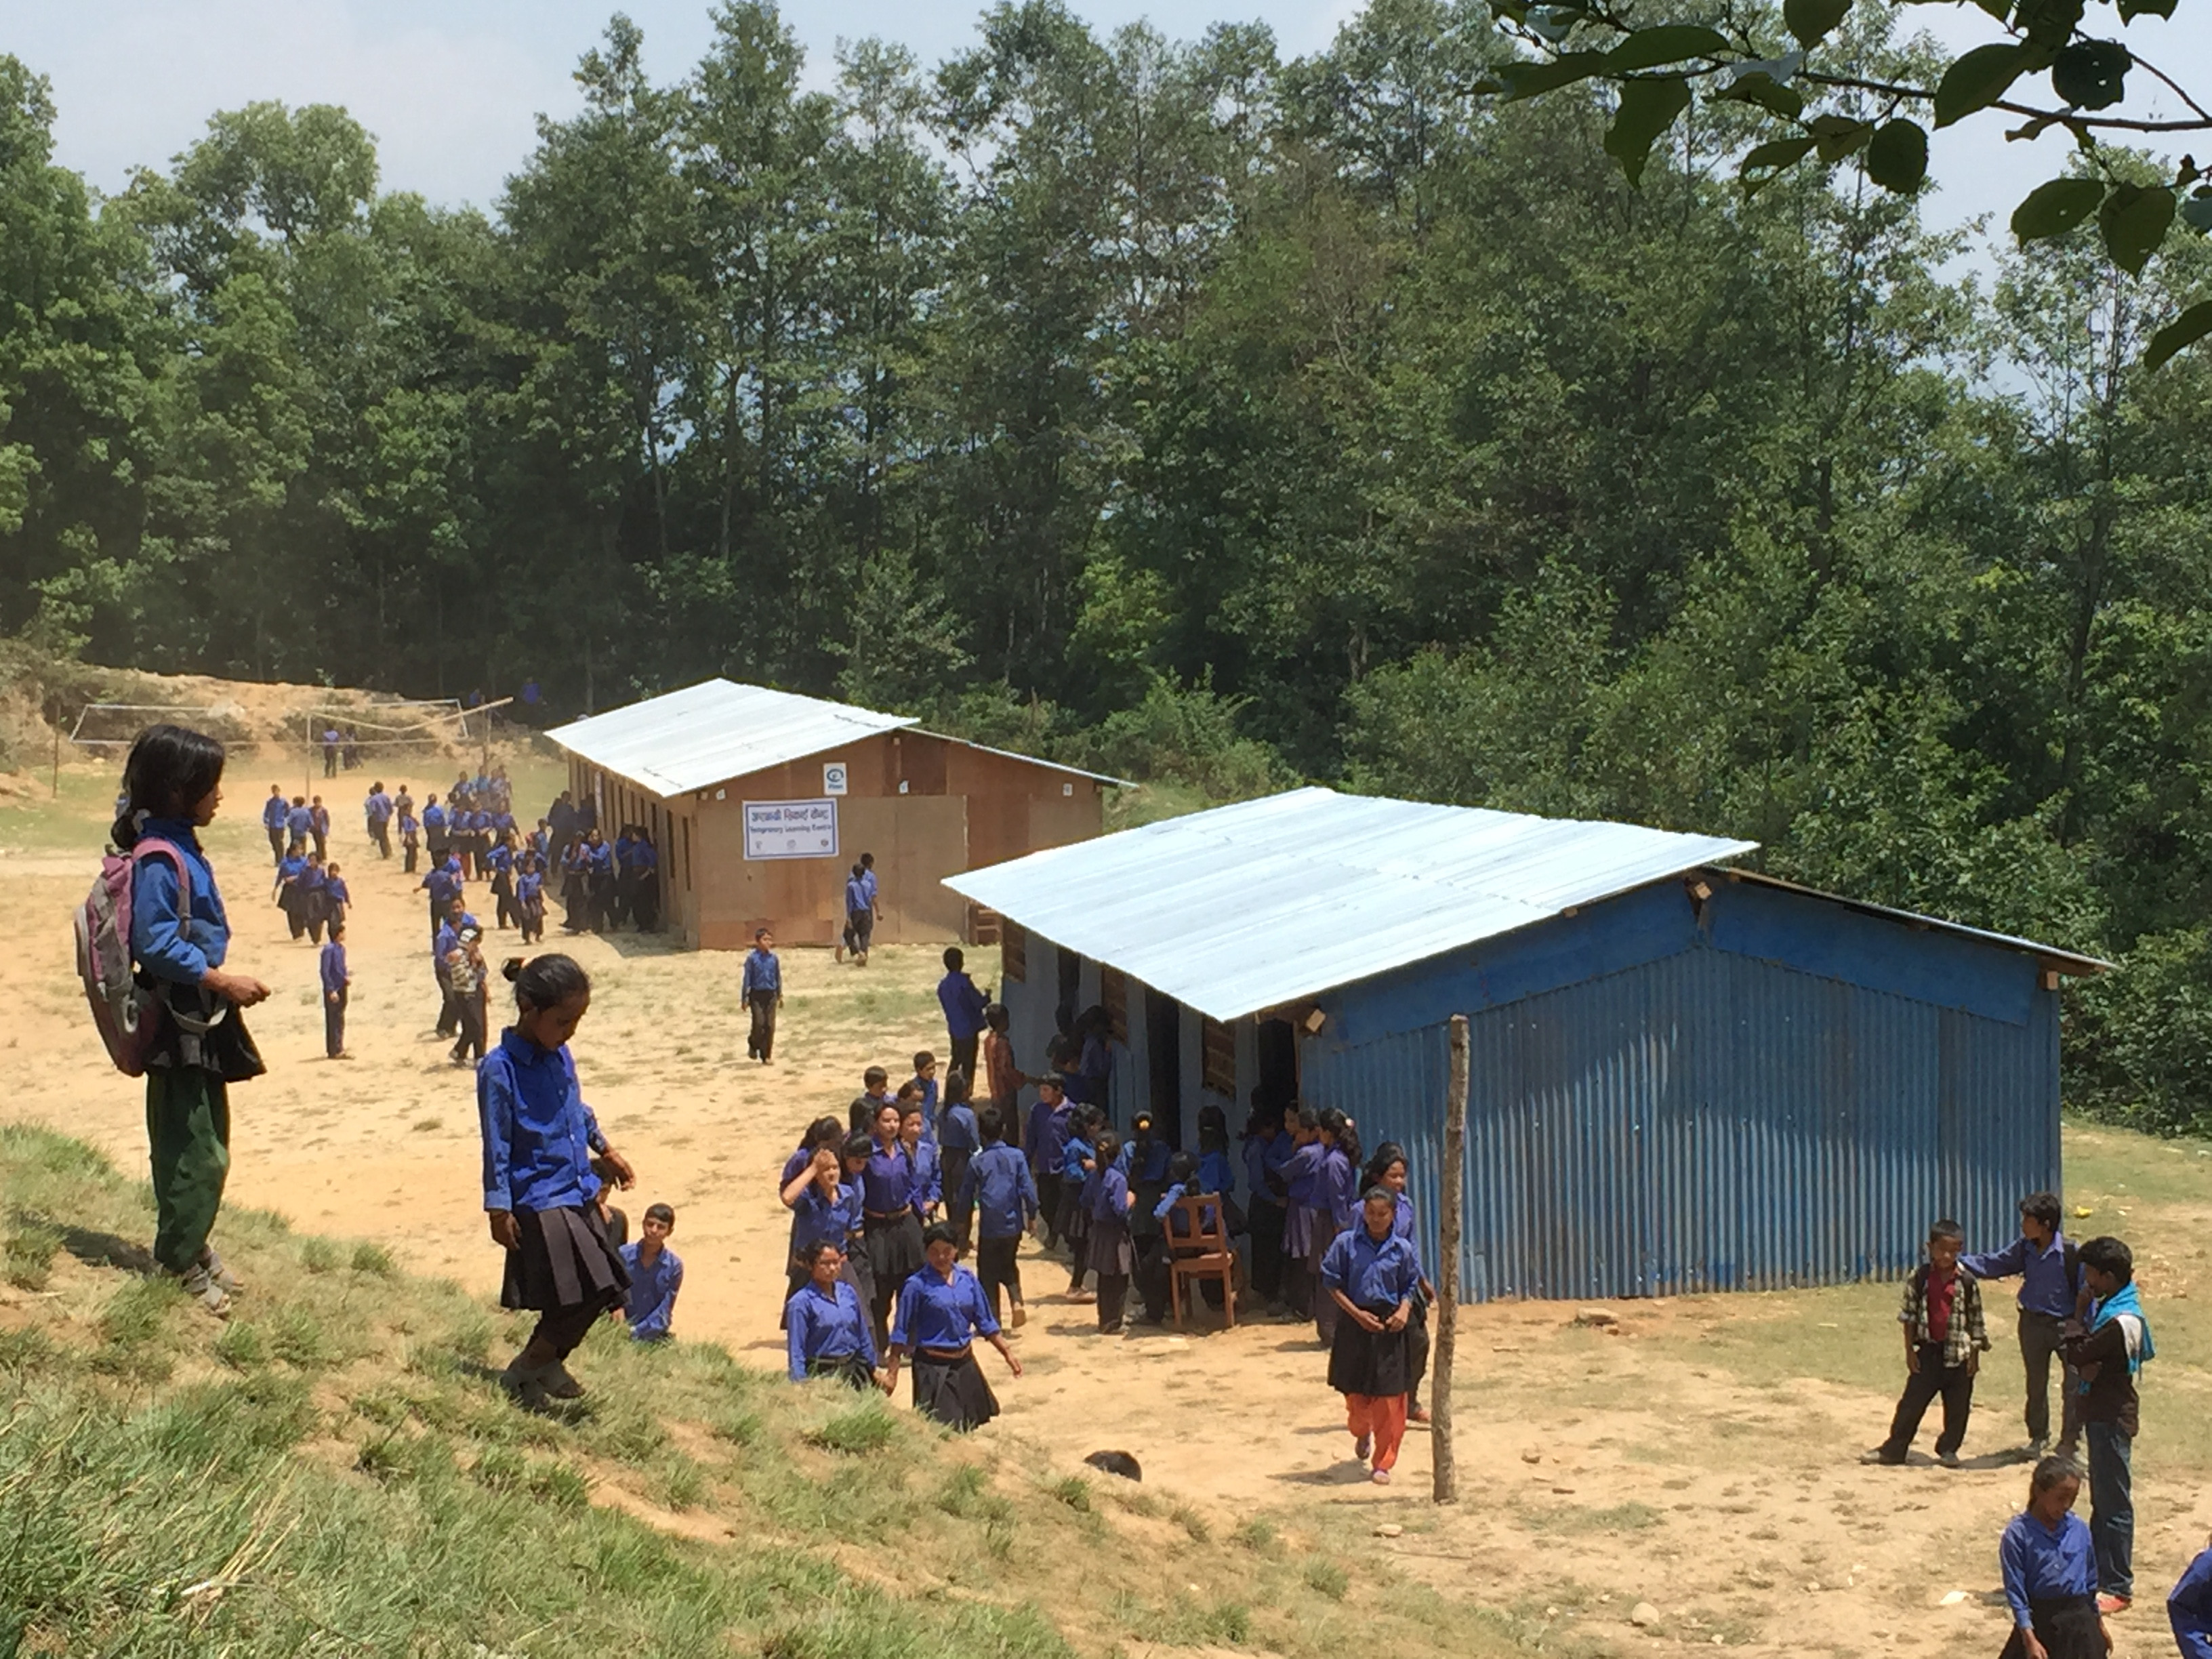 Children return to school after the Nepal earthquakes